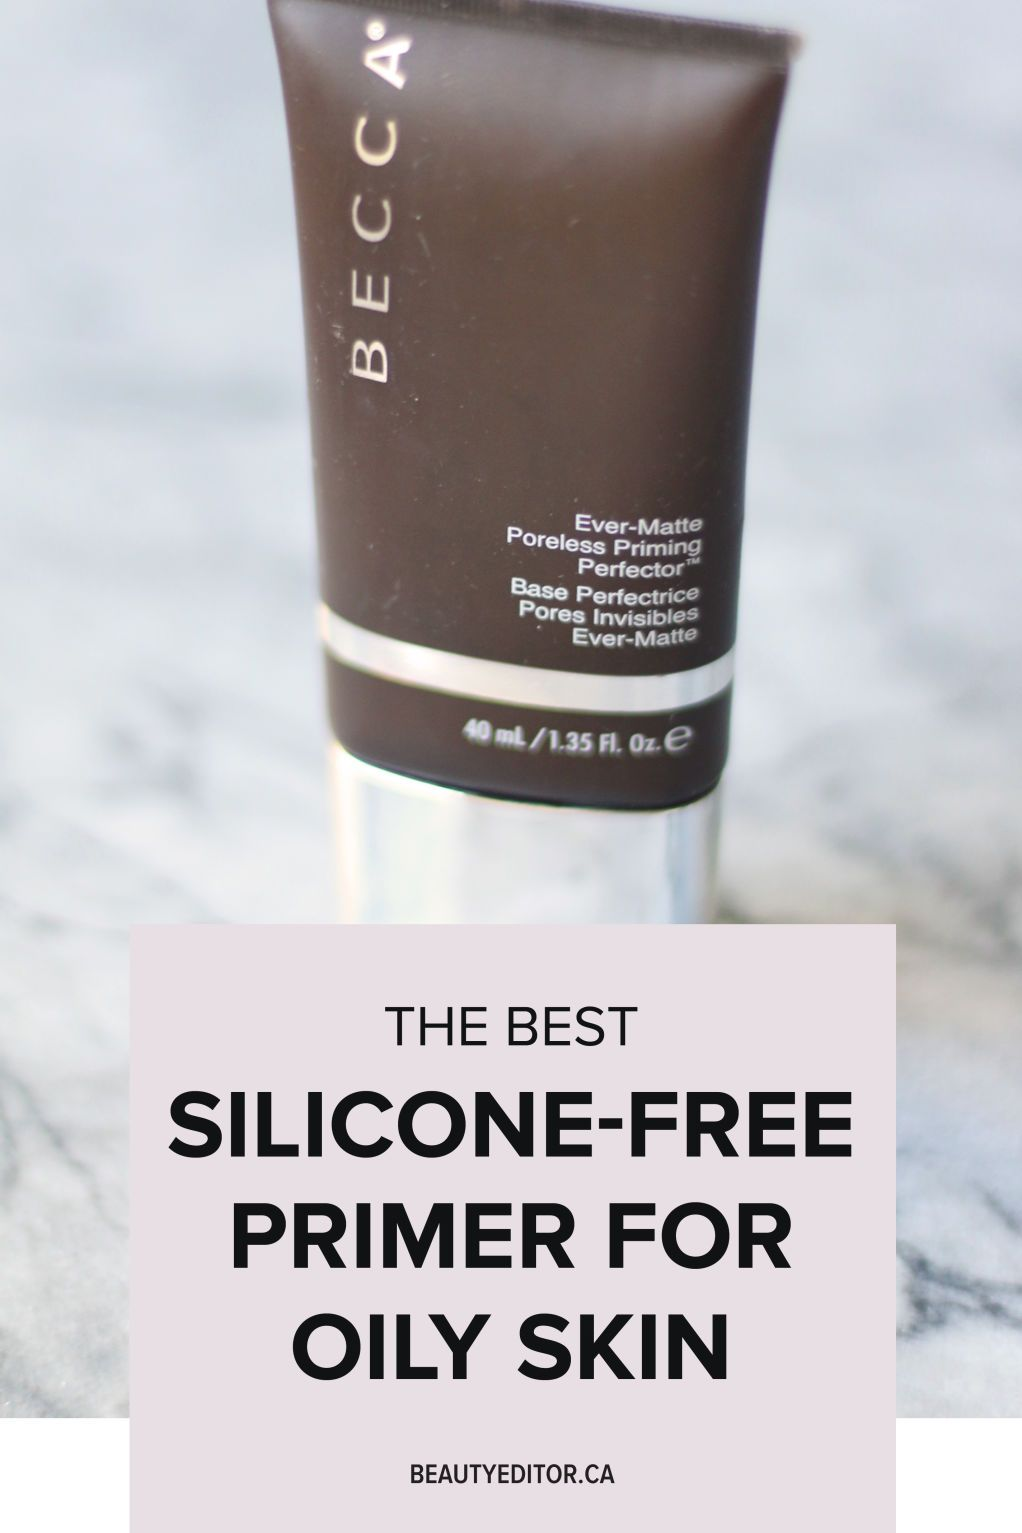 Silicone Makeup Brushes: This Is The Best Silicone-Free Primer For Oily Skin